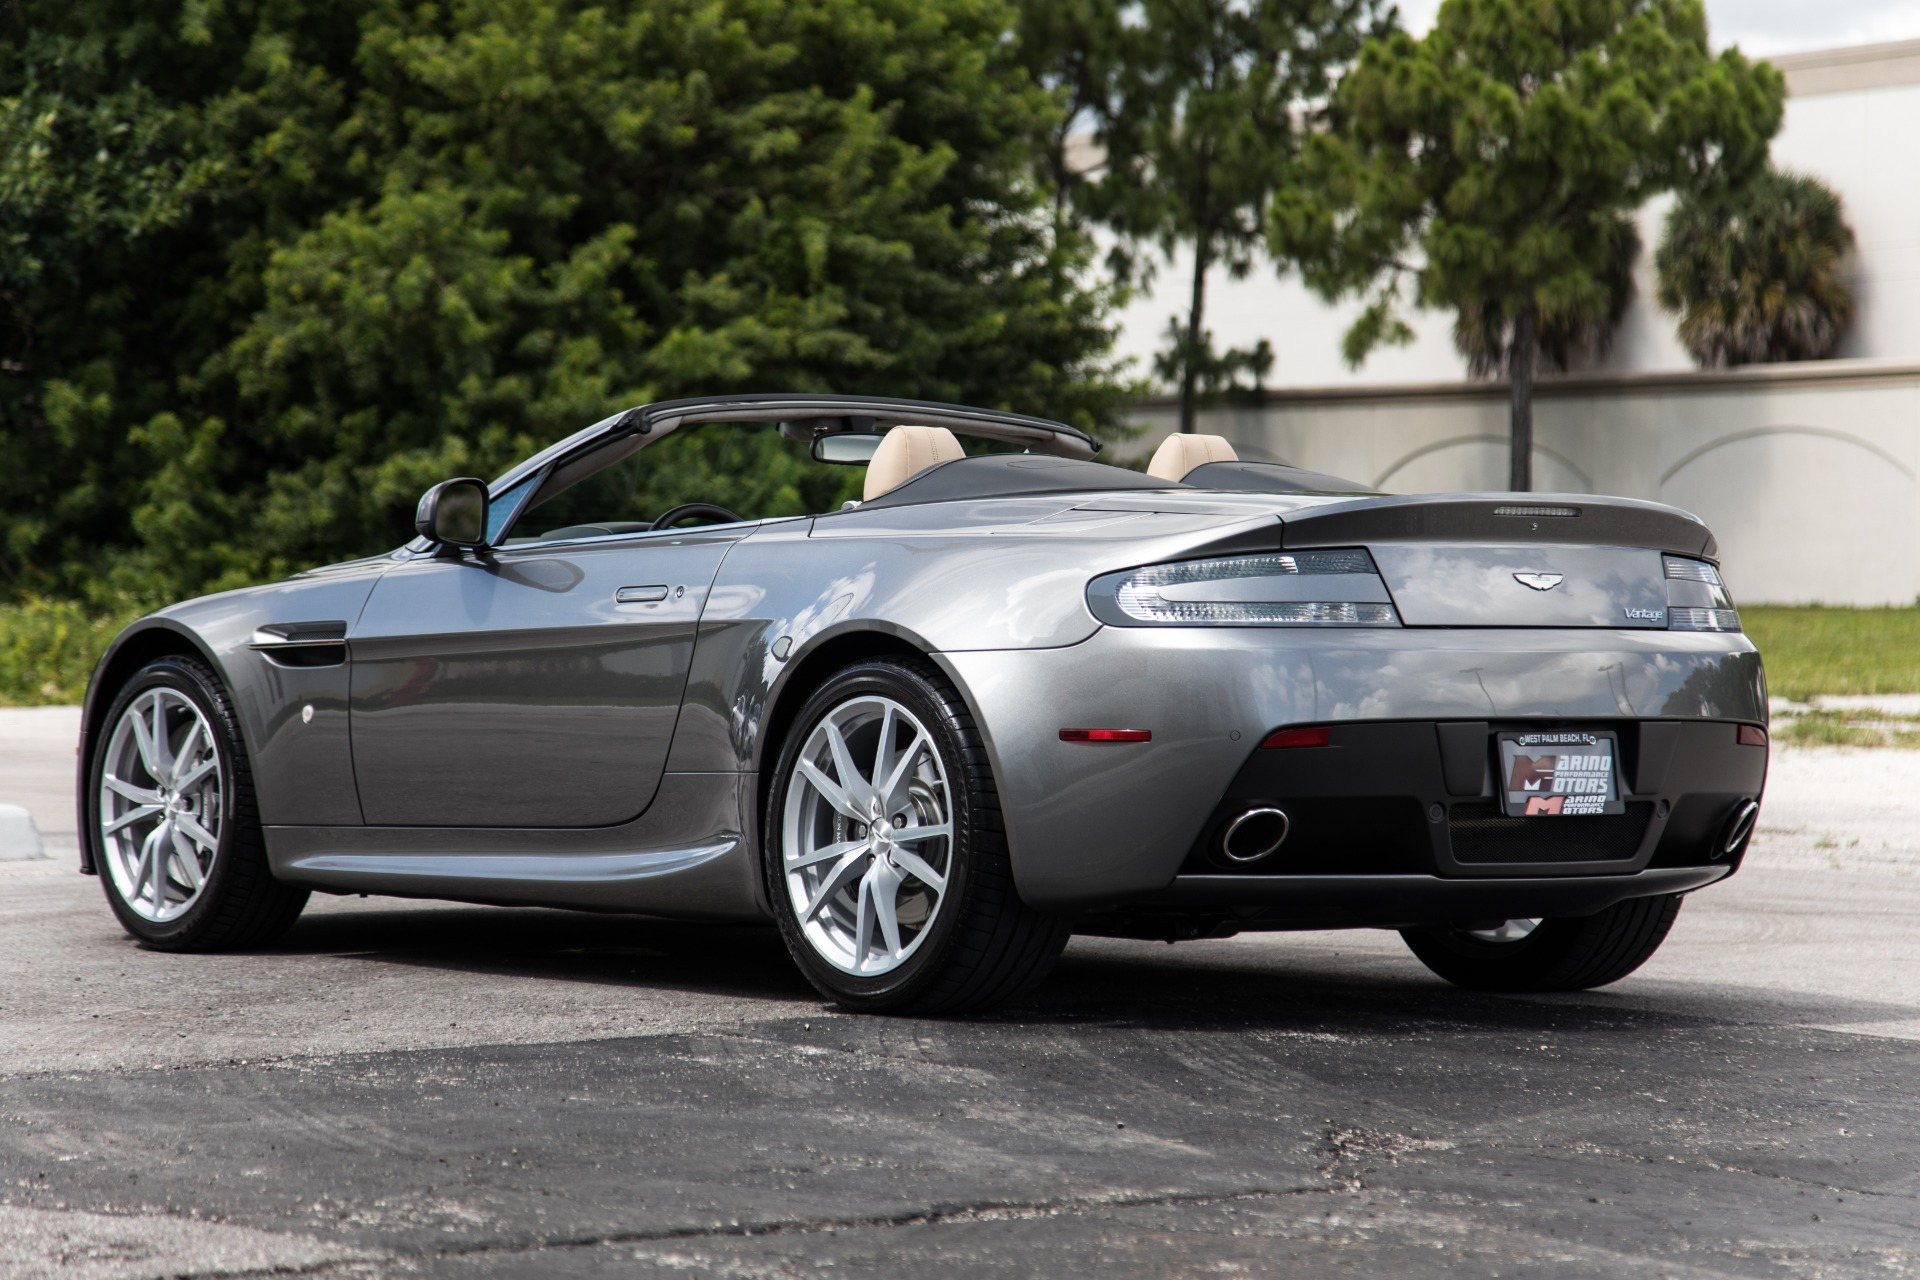 Used 2015 Aston Martin V8 Vantage Roadster For Sale 72 900 Marino Performance Motors Stock D19710